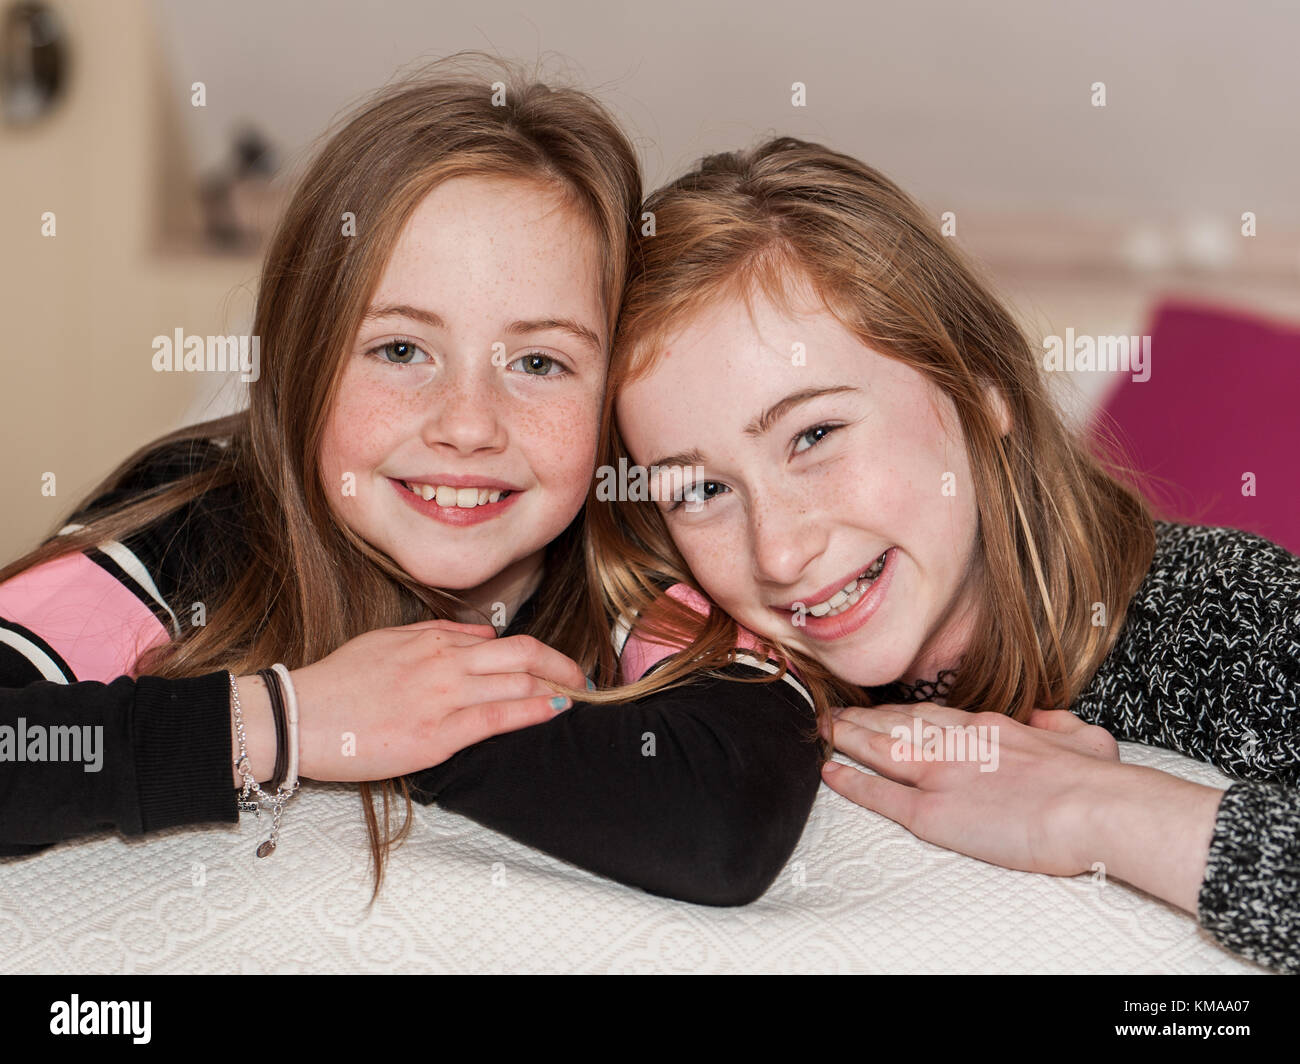 two-smiling-young-girls-posing-for-the-c